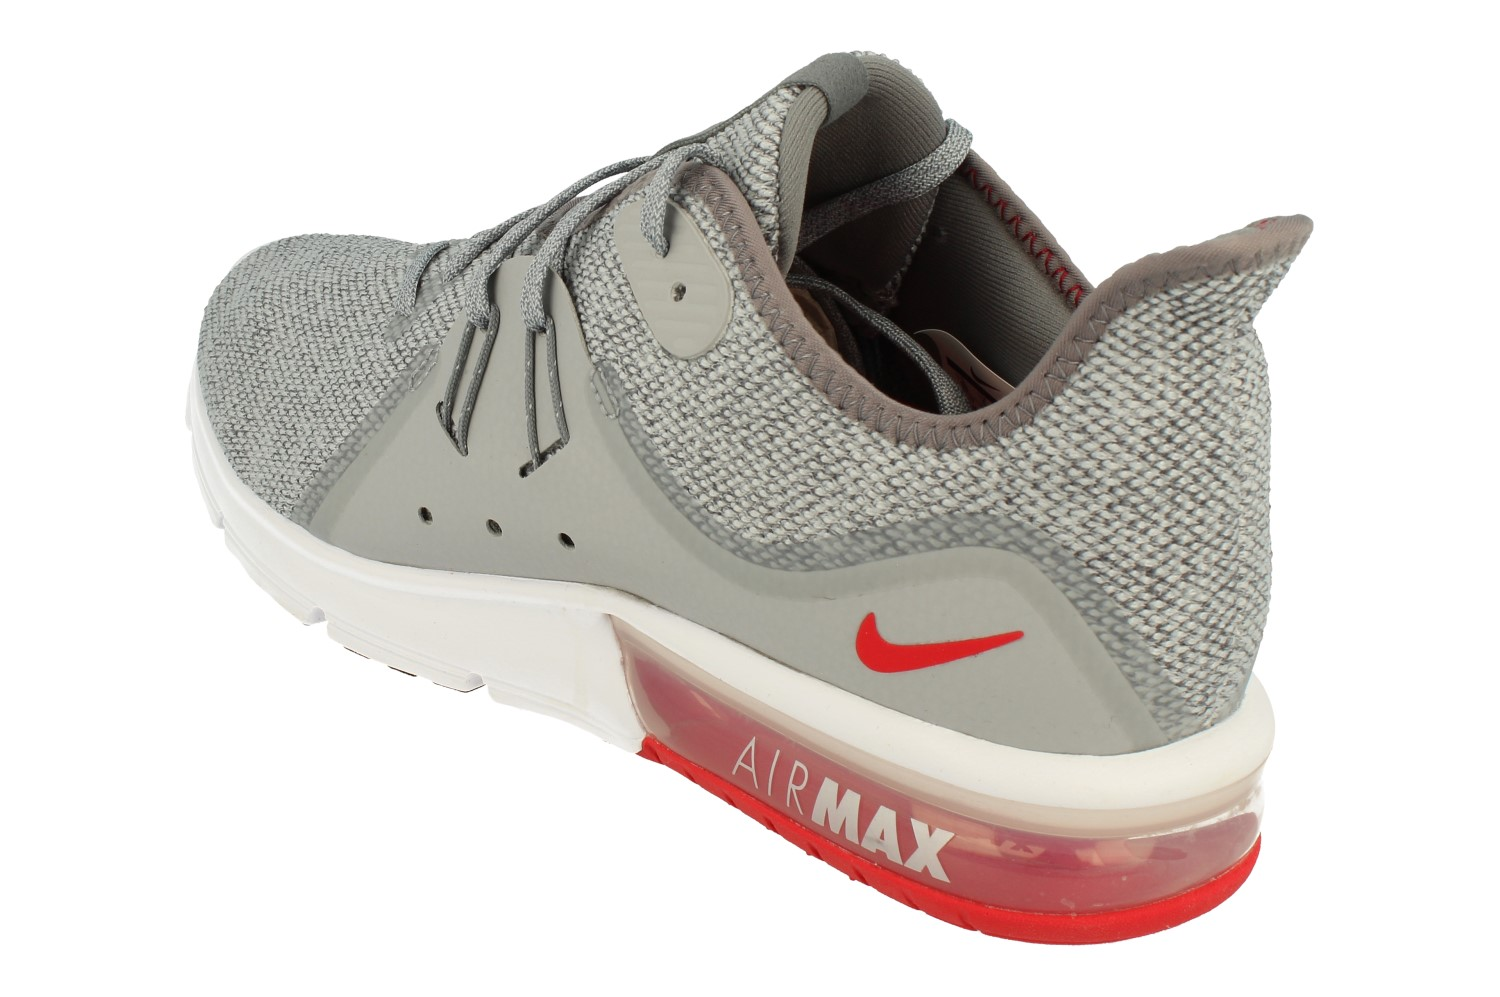 Nike Air Max Sequent 3 Mens Running Trainers 921694 Sneakers Shoes 060 8e2b8f22a0